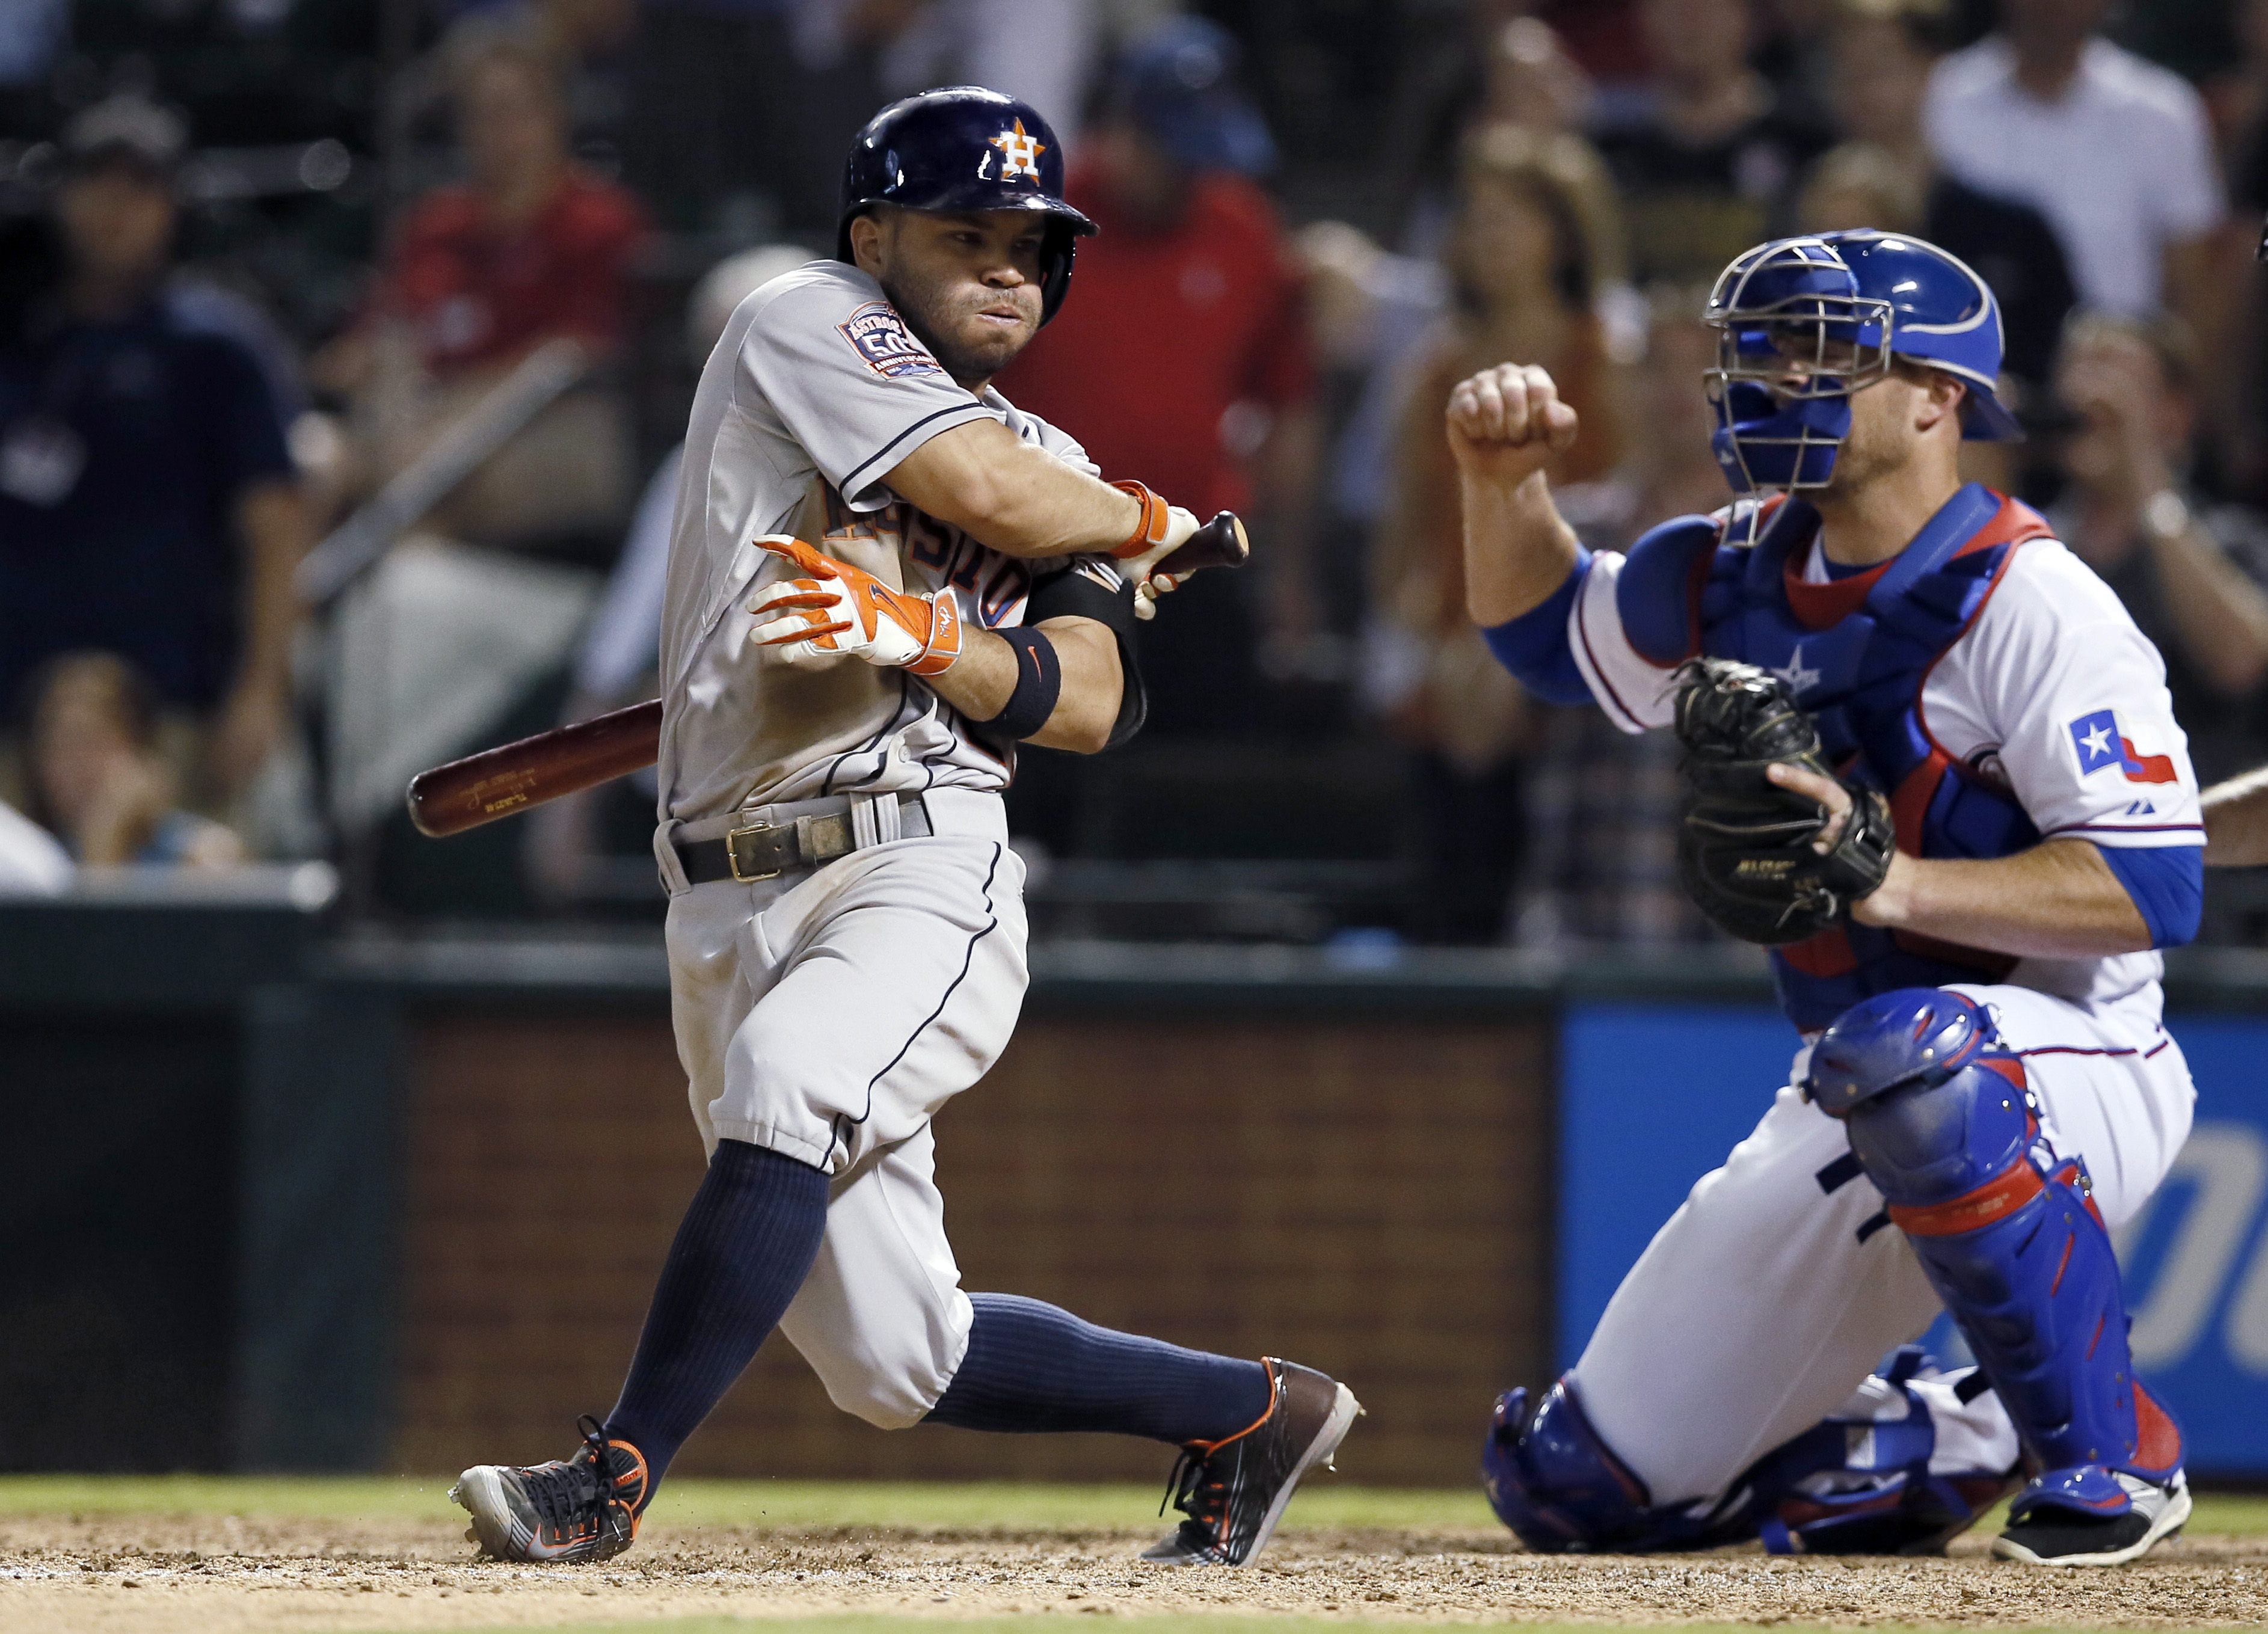 Texas Rangers catcher Chris Gimenez pumps his fist as Houston Astros' Jose Altuve swings at a pitch for a third strike, ending the 4-3 Rangers win in a baseball game Tuesday, Aug. 4, 2015, in Arlington, Texas. (AP Photo/Tony Gutierrez)